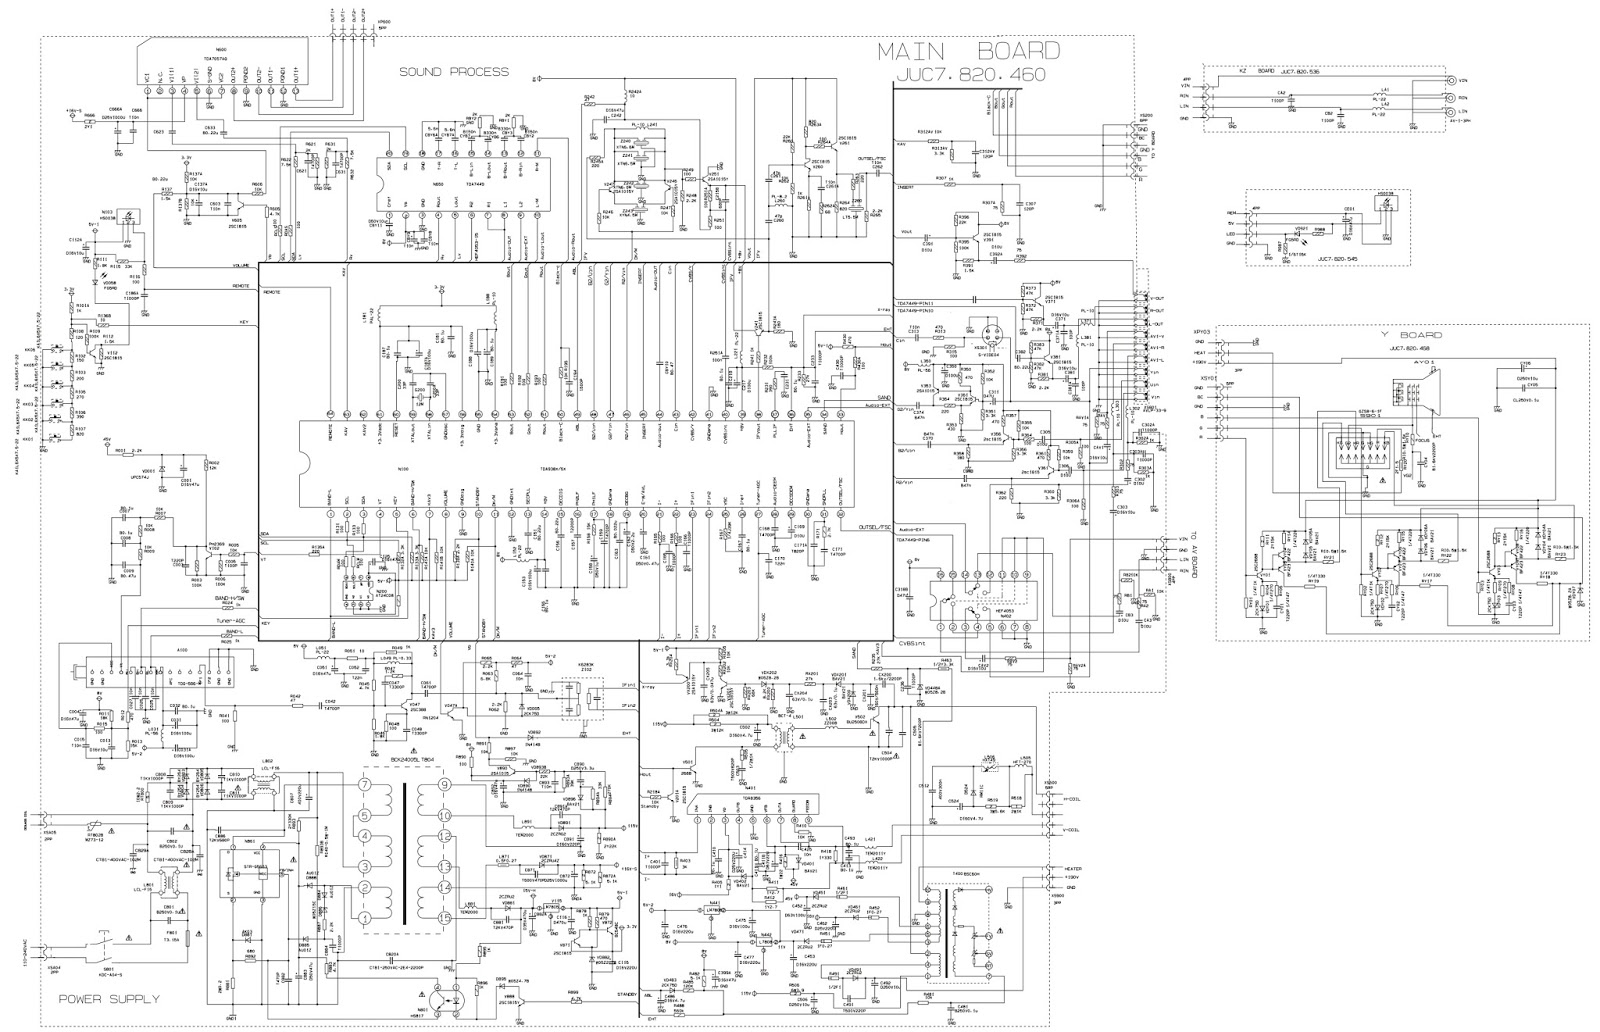 Wiring Diagram Ac Changhong on ac air conditioning diagram, ac receptacles diagram, ac system wiring, ac heater diagram, ac electrical circuit diagrams, ac assembly diagram, ac motors diagram, ac light wiring, ac solenoid diagram, ac schematic diagram, ac manifold diagram, ac installation diagram, circuit breaker diagram, ac wiring code, ac wiring color, ac regulator diagram, ac refrigerant cycle diagram, ac wiring circuit, ac heating element diagram, ac ductwork diagram,